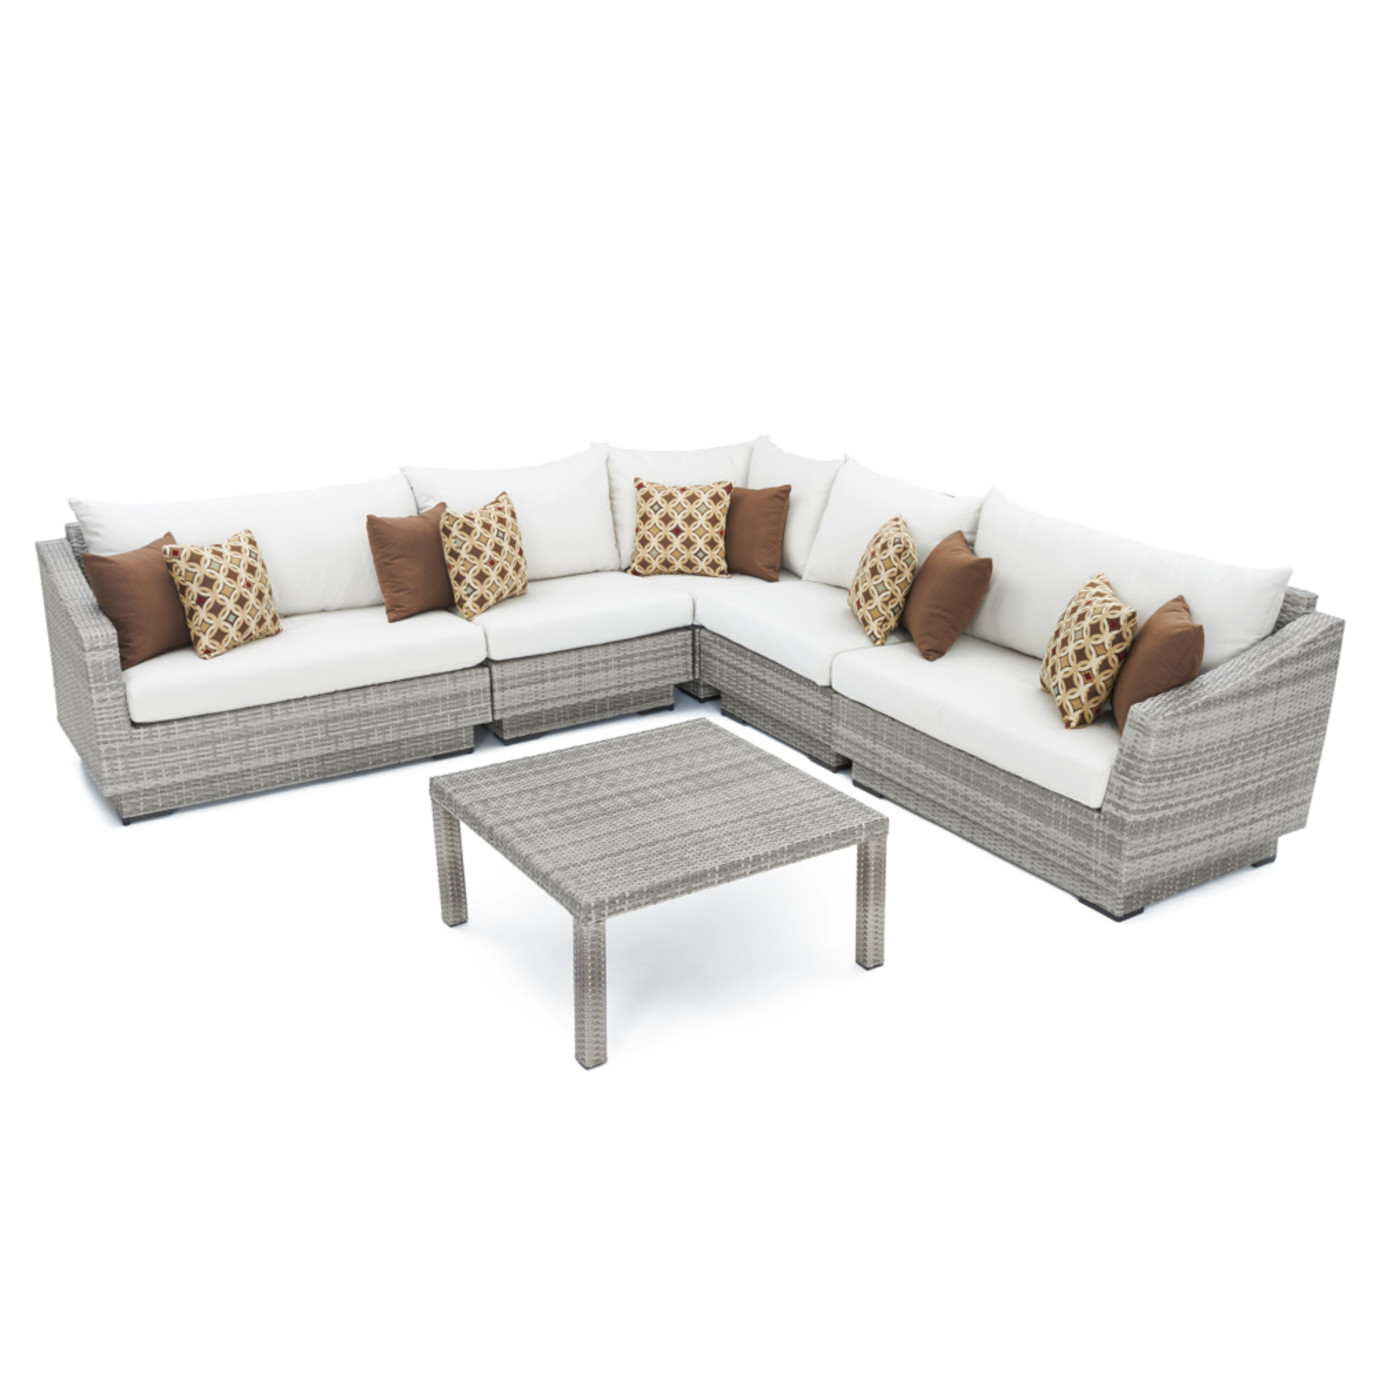 Cannes™ 6pc Sectional & Table - Moroccan Cream